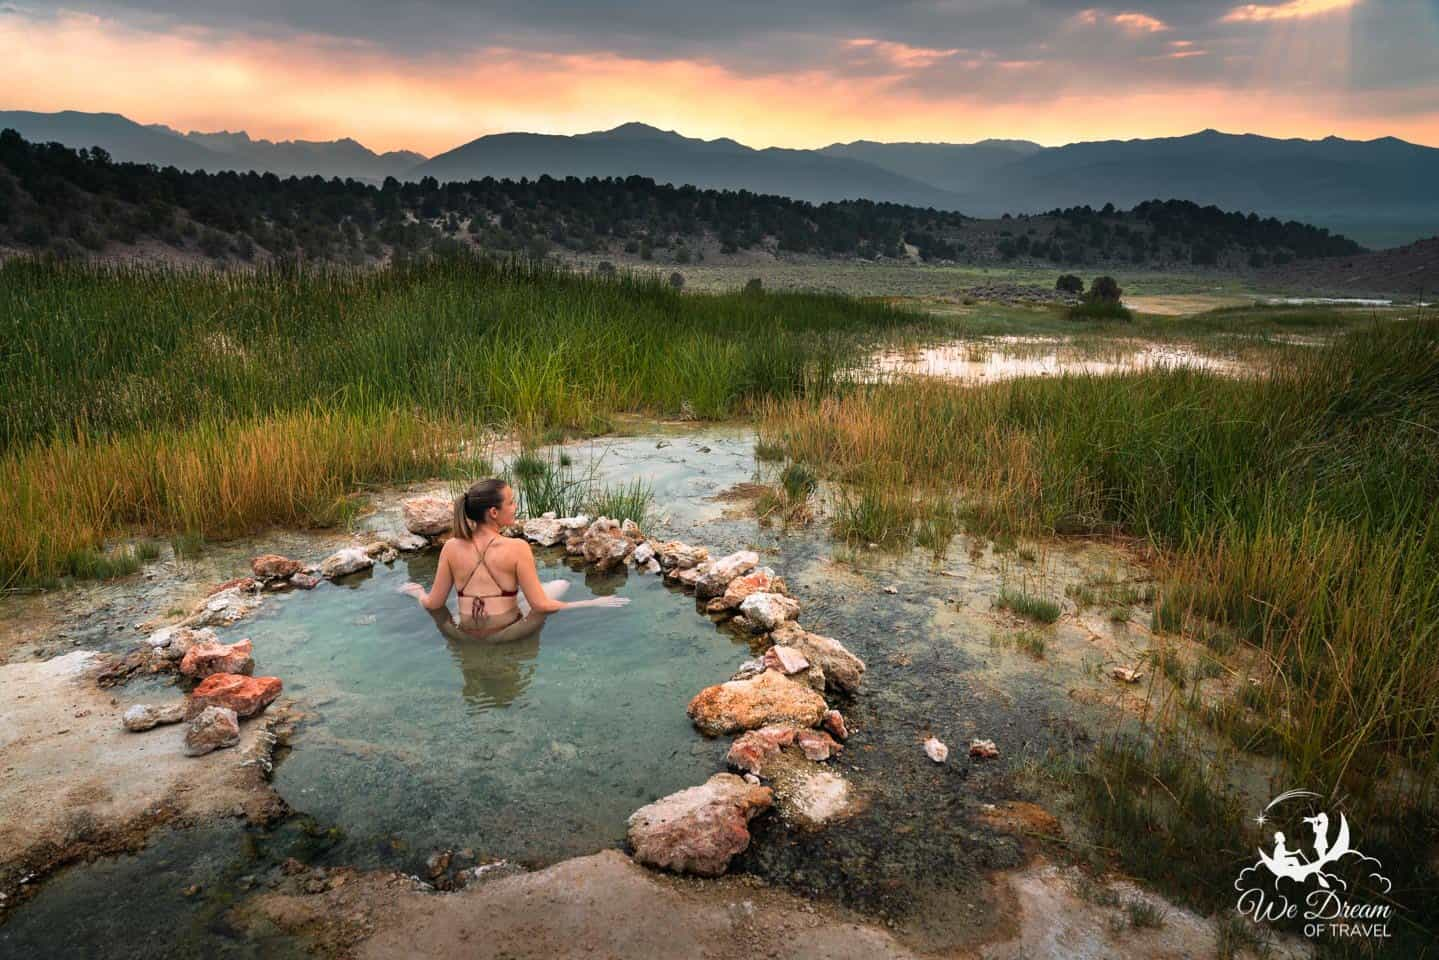 A girl sat in a shallow secret hot spring at sunset at Travertine Hot Springs